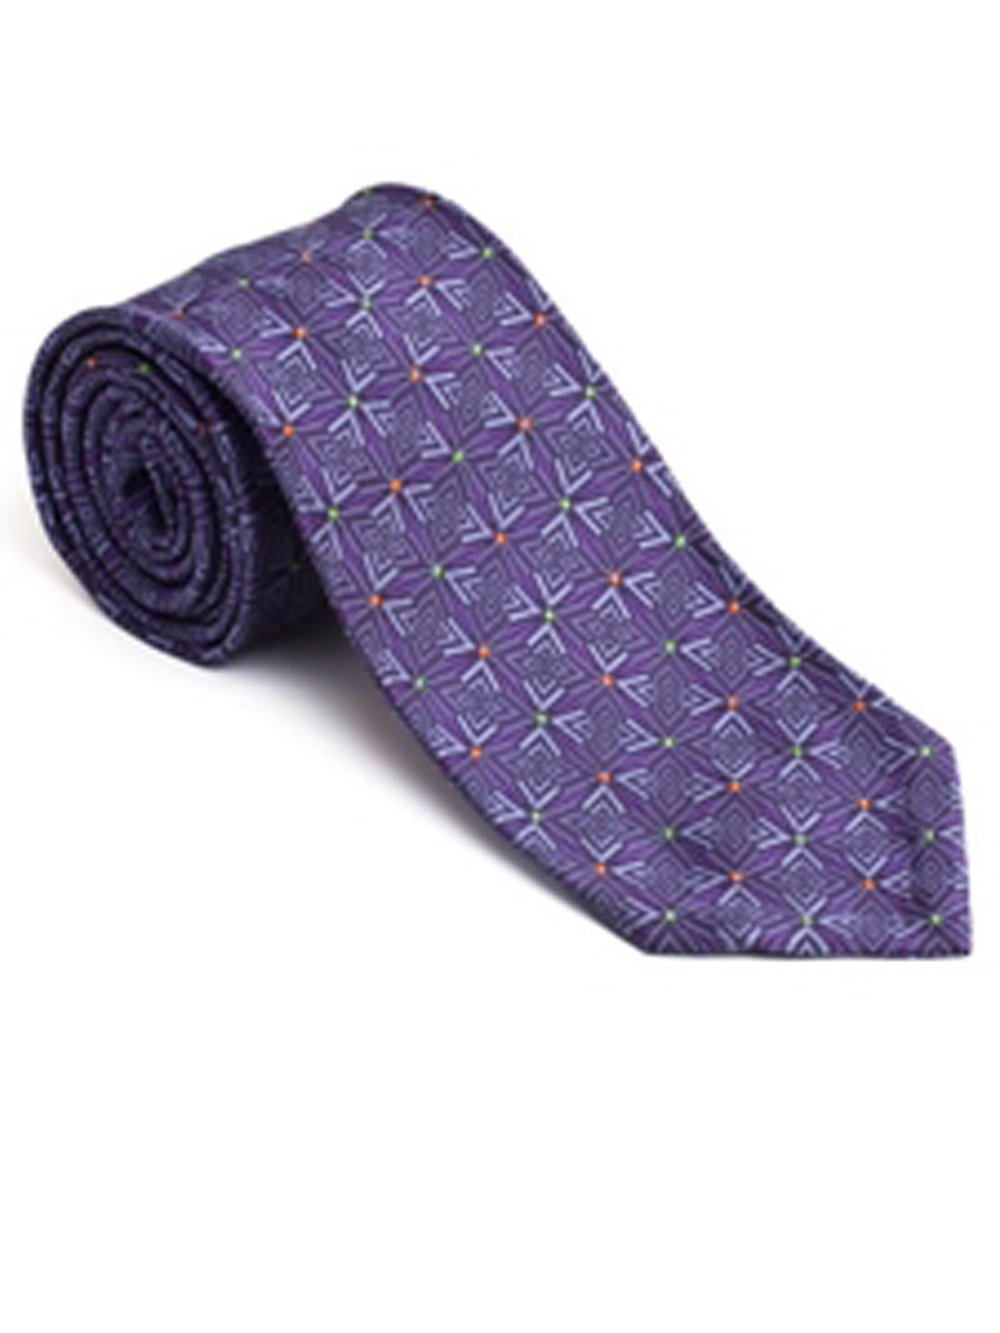 Robert Talbott Purple Pebble Beach Silk Seven Fold Tie